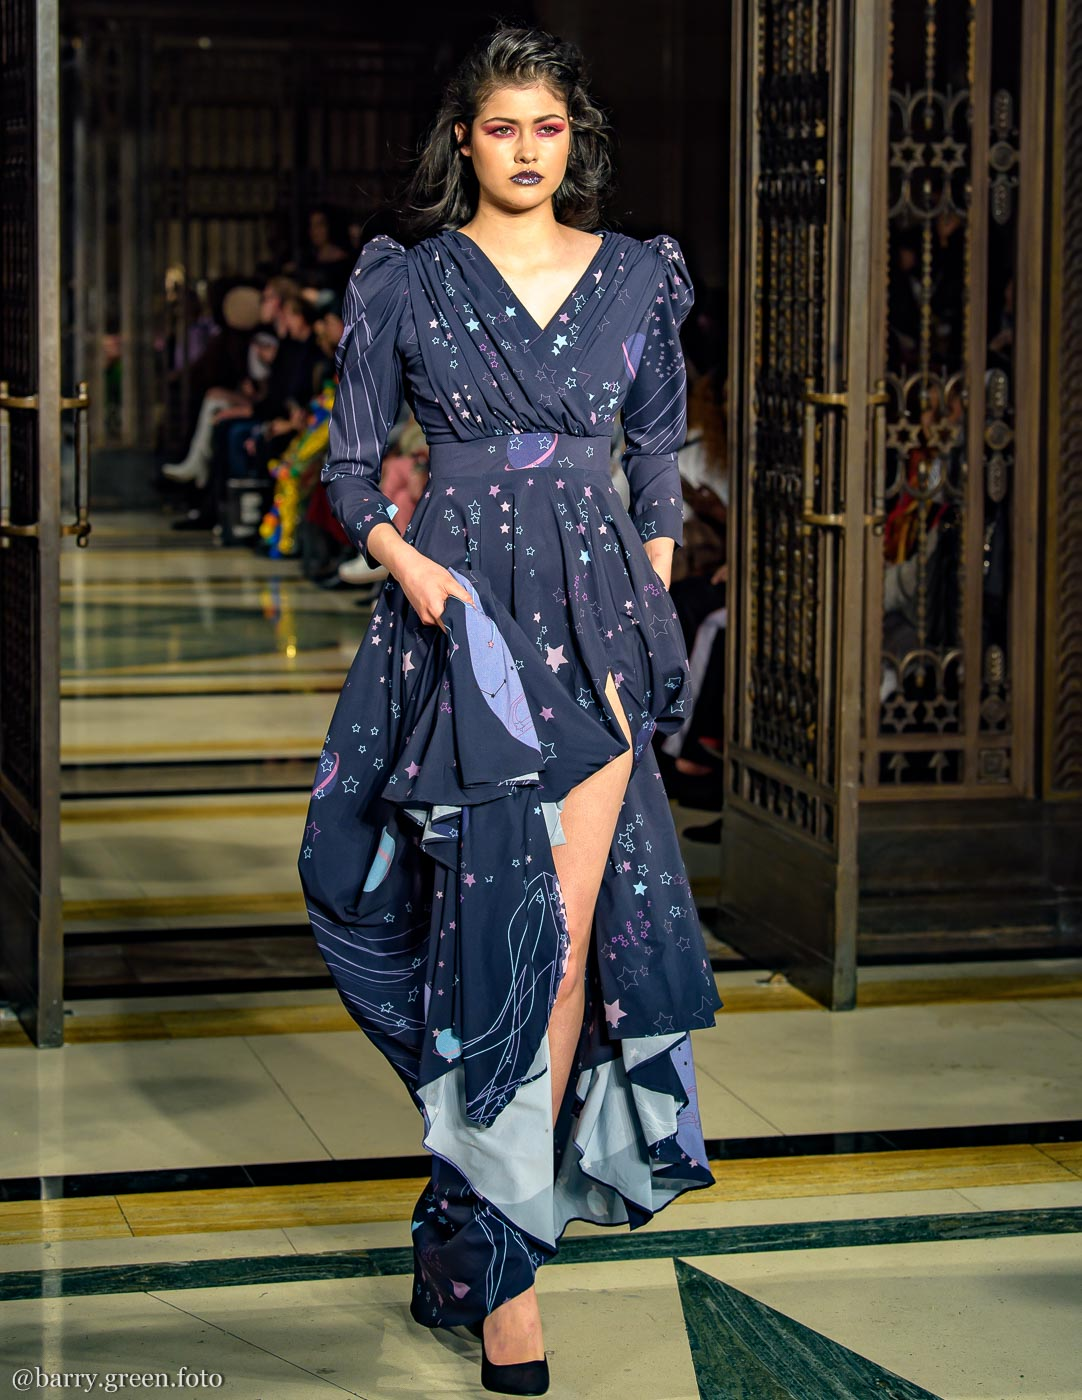 London Fashion Week AW18 catwalk collection by designer DeebyDalia from Dubai Design & Fashion Council DDFC